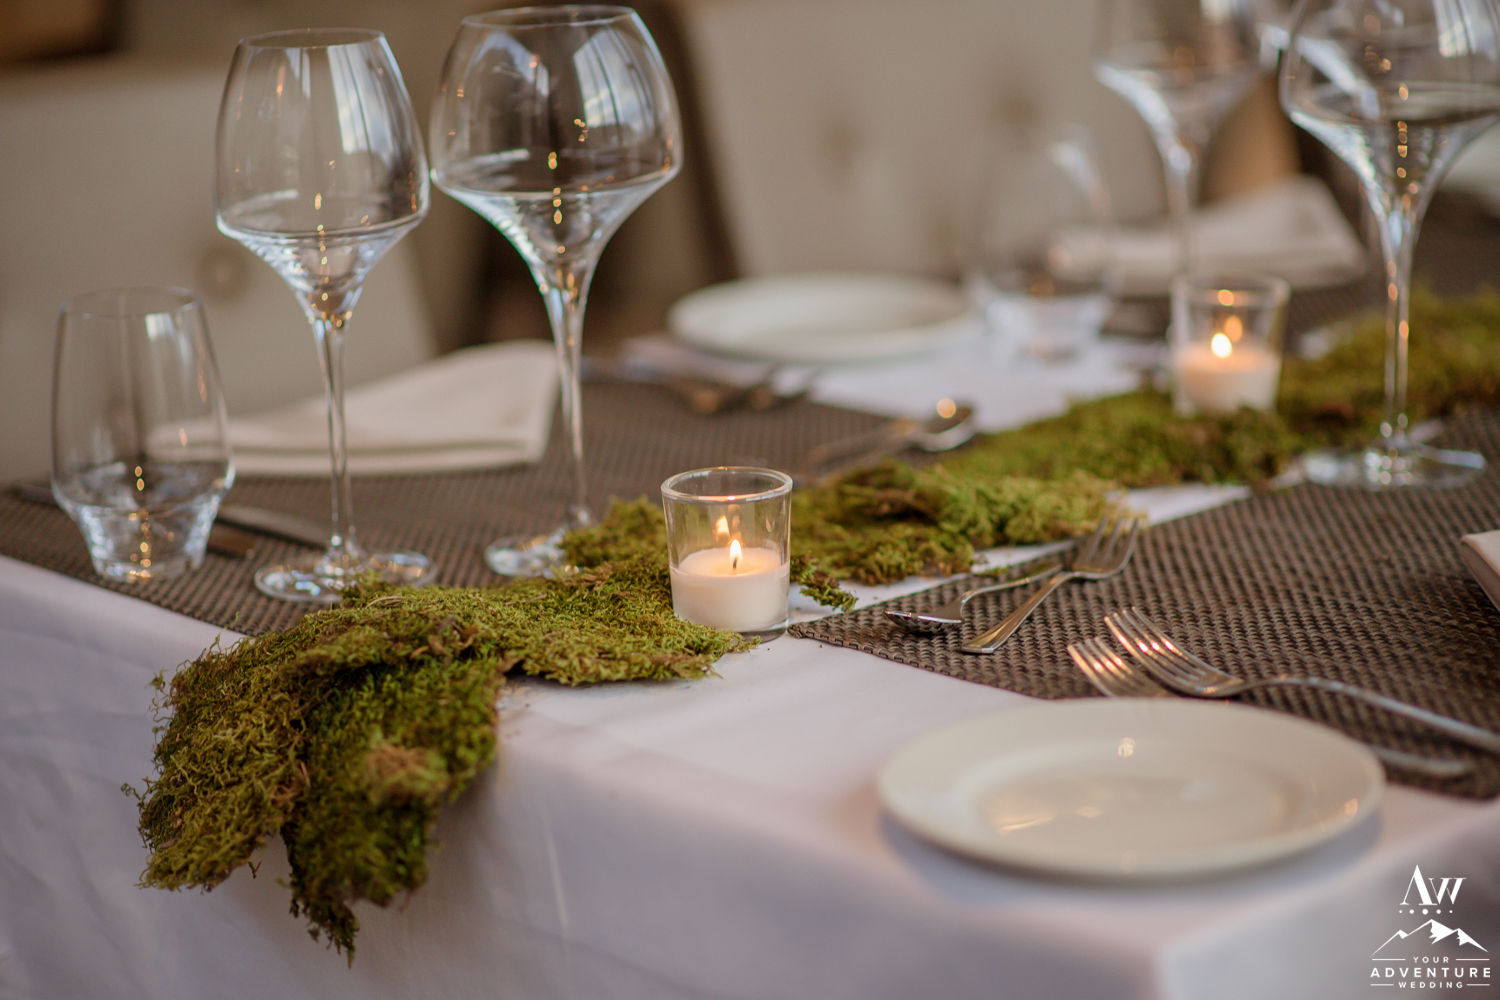 Moss and Candles Iceland Wedding Reception Setup